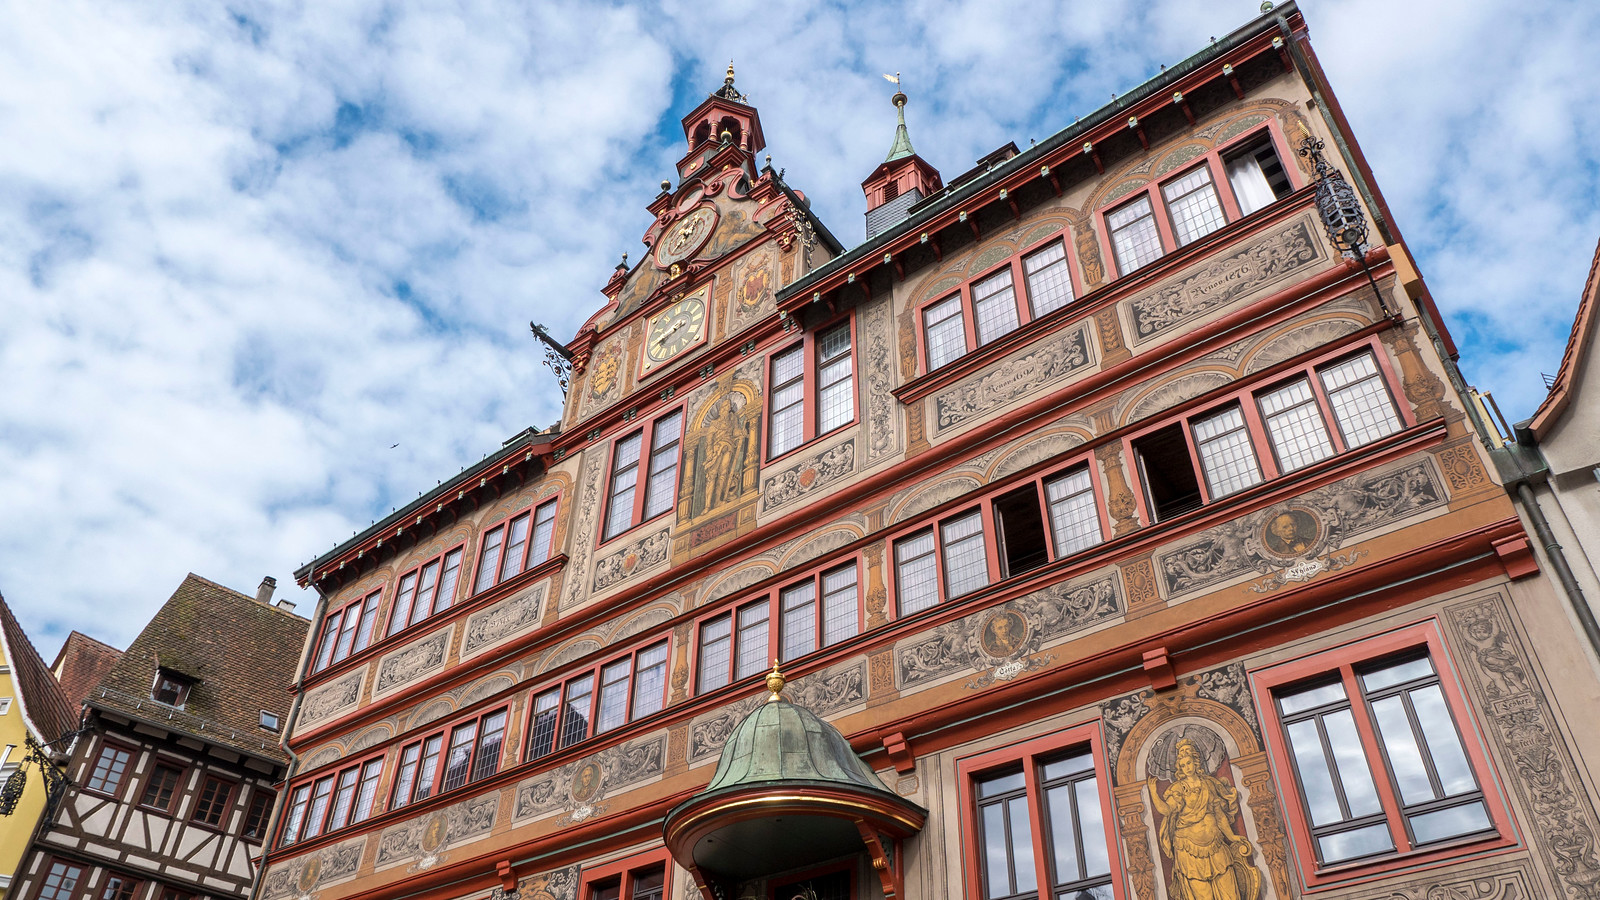 Rathaus. City Hall in Tubingen. Things to do in Tubingen Germany.